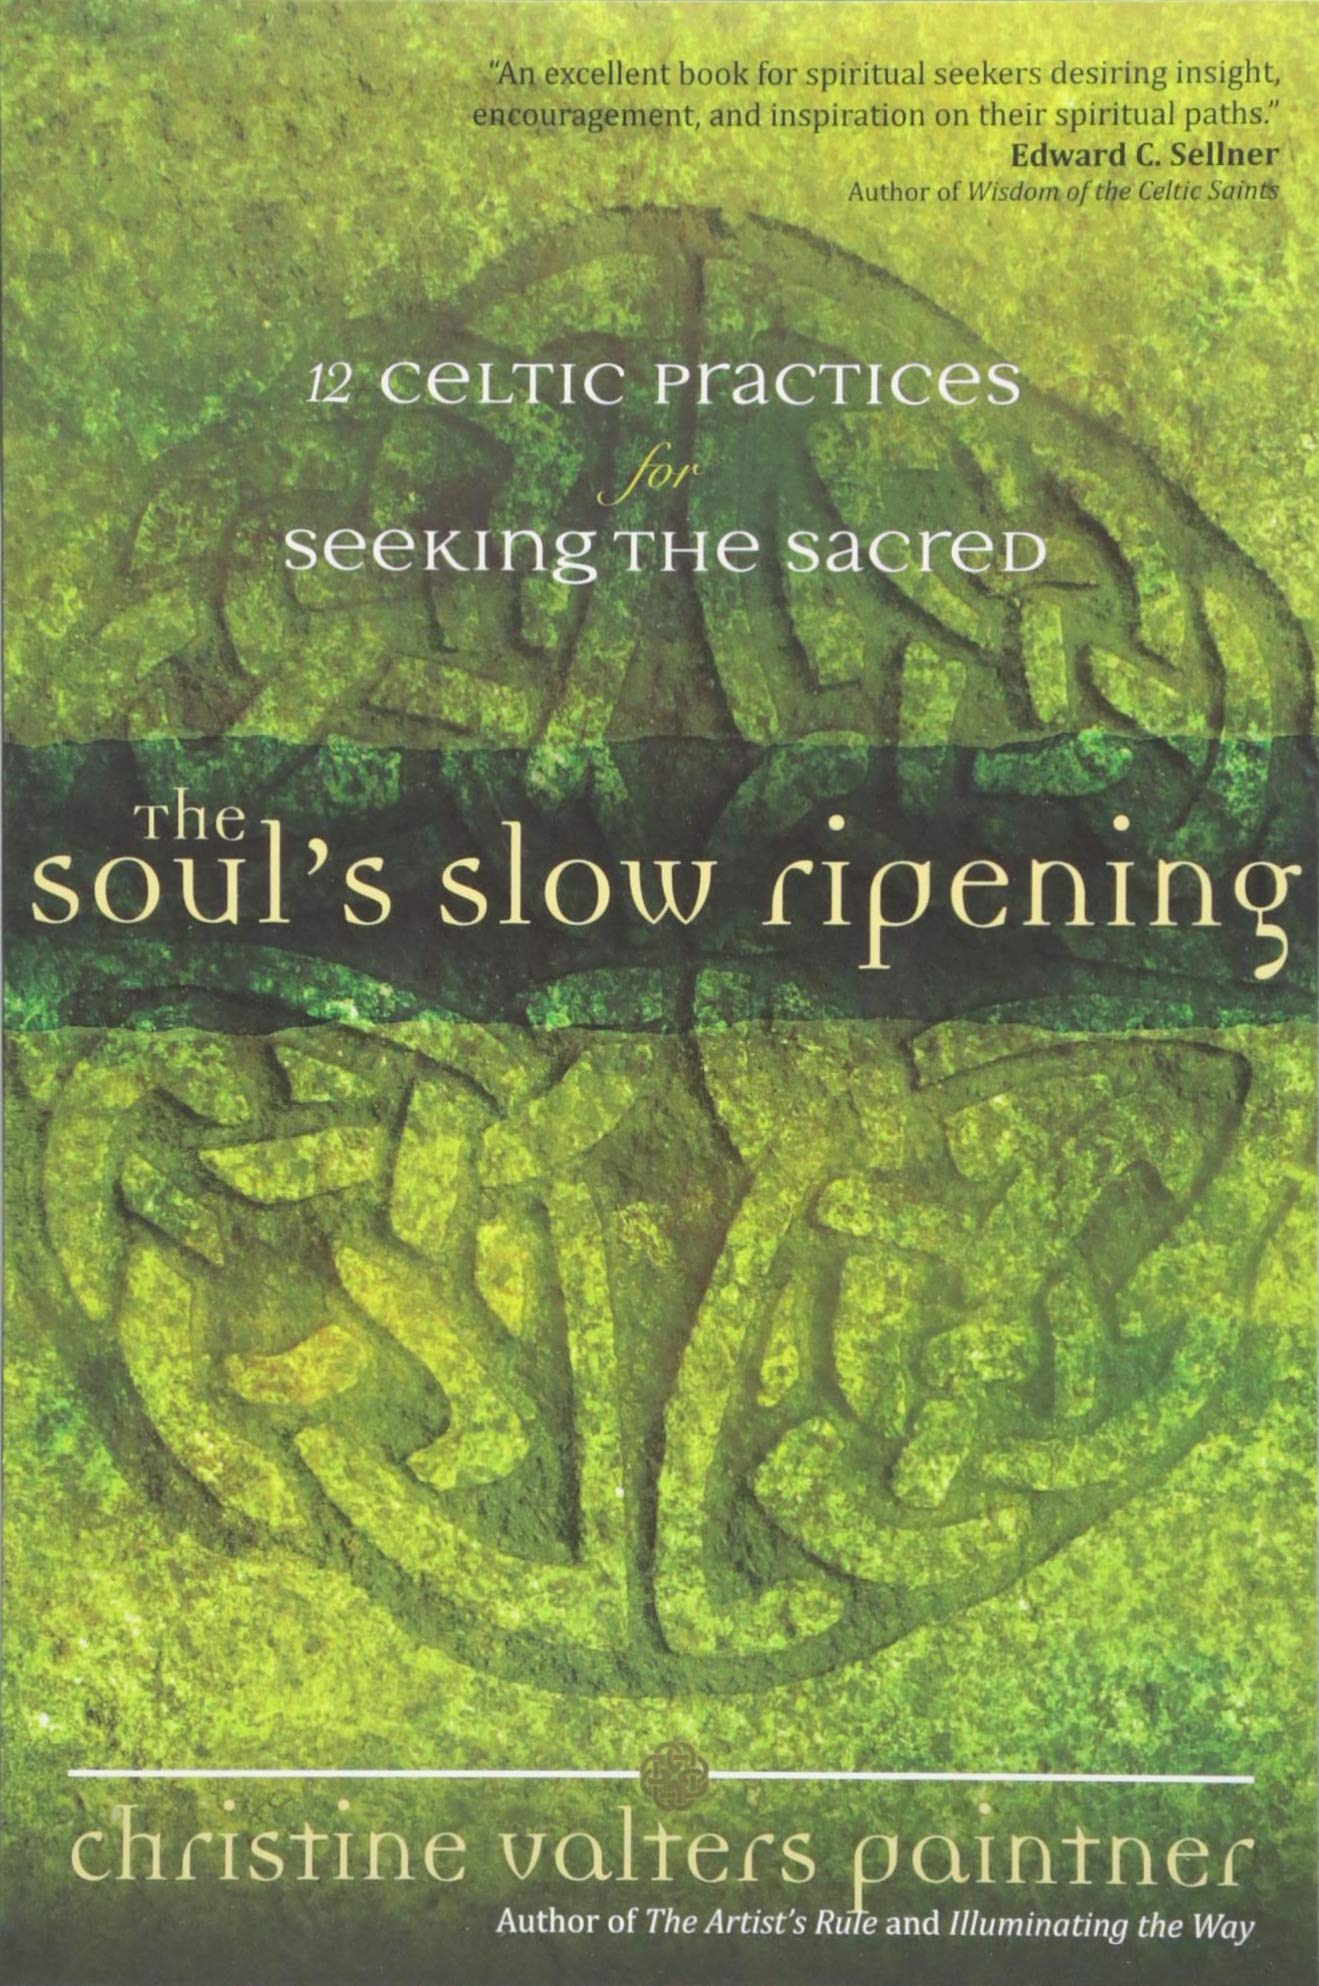 The Soul's Slow Ripening: 12 Celtic Practices for Seeking the Sacred:  Christine Valters Paintner: 9781932057102: Amazon.com: Books